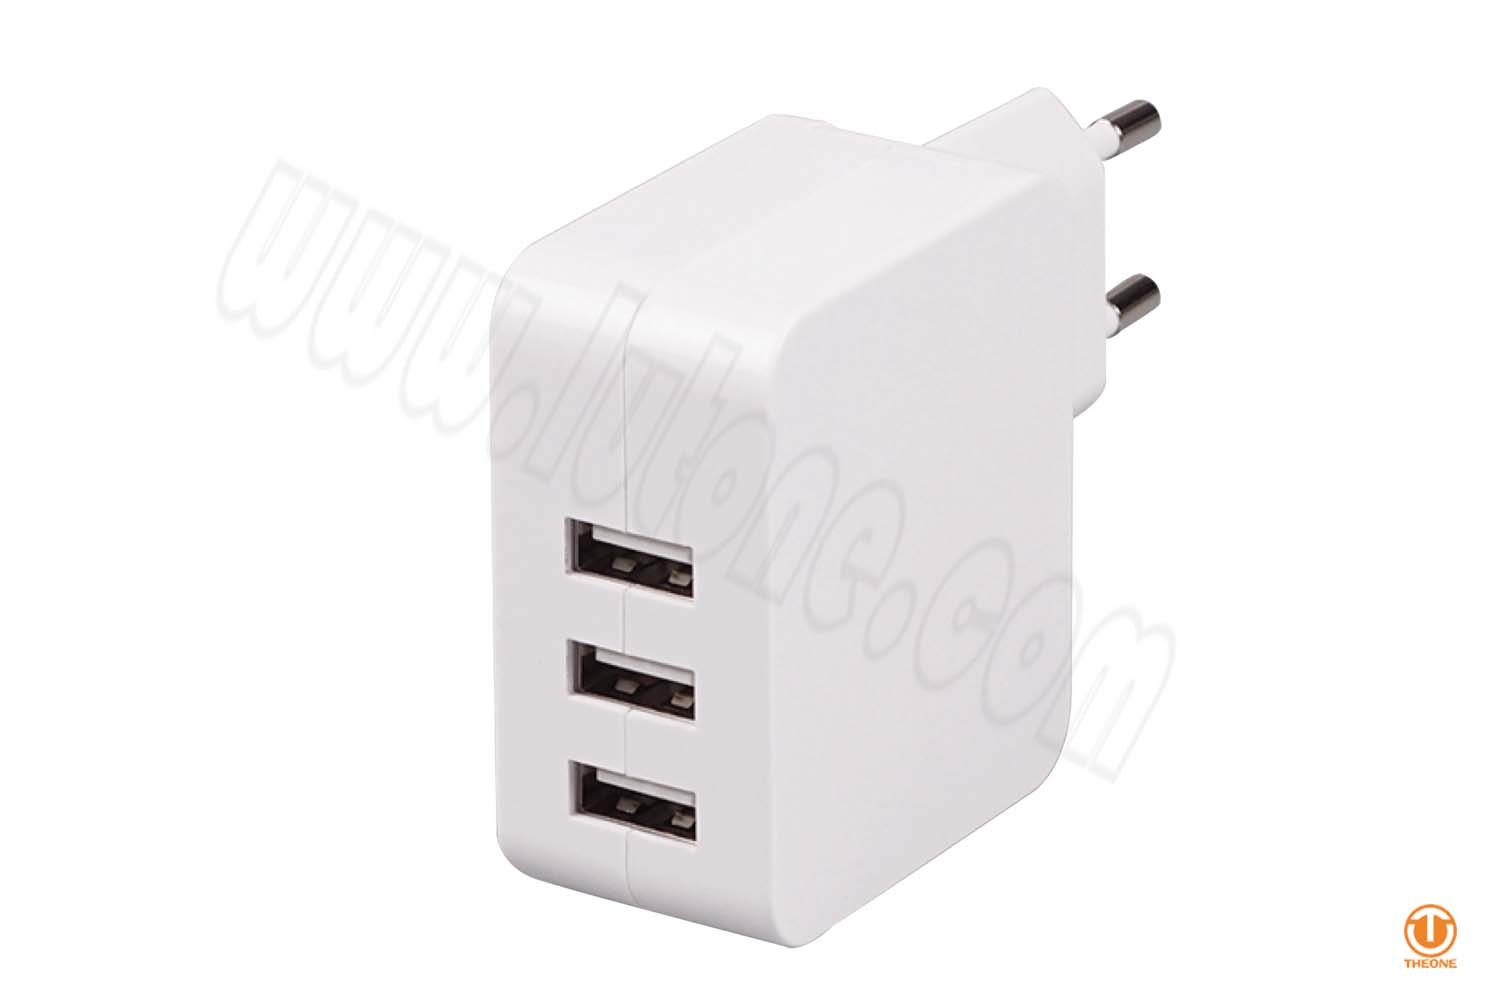 tw03a0-1 dual usb wall charger